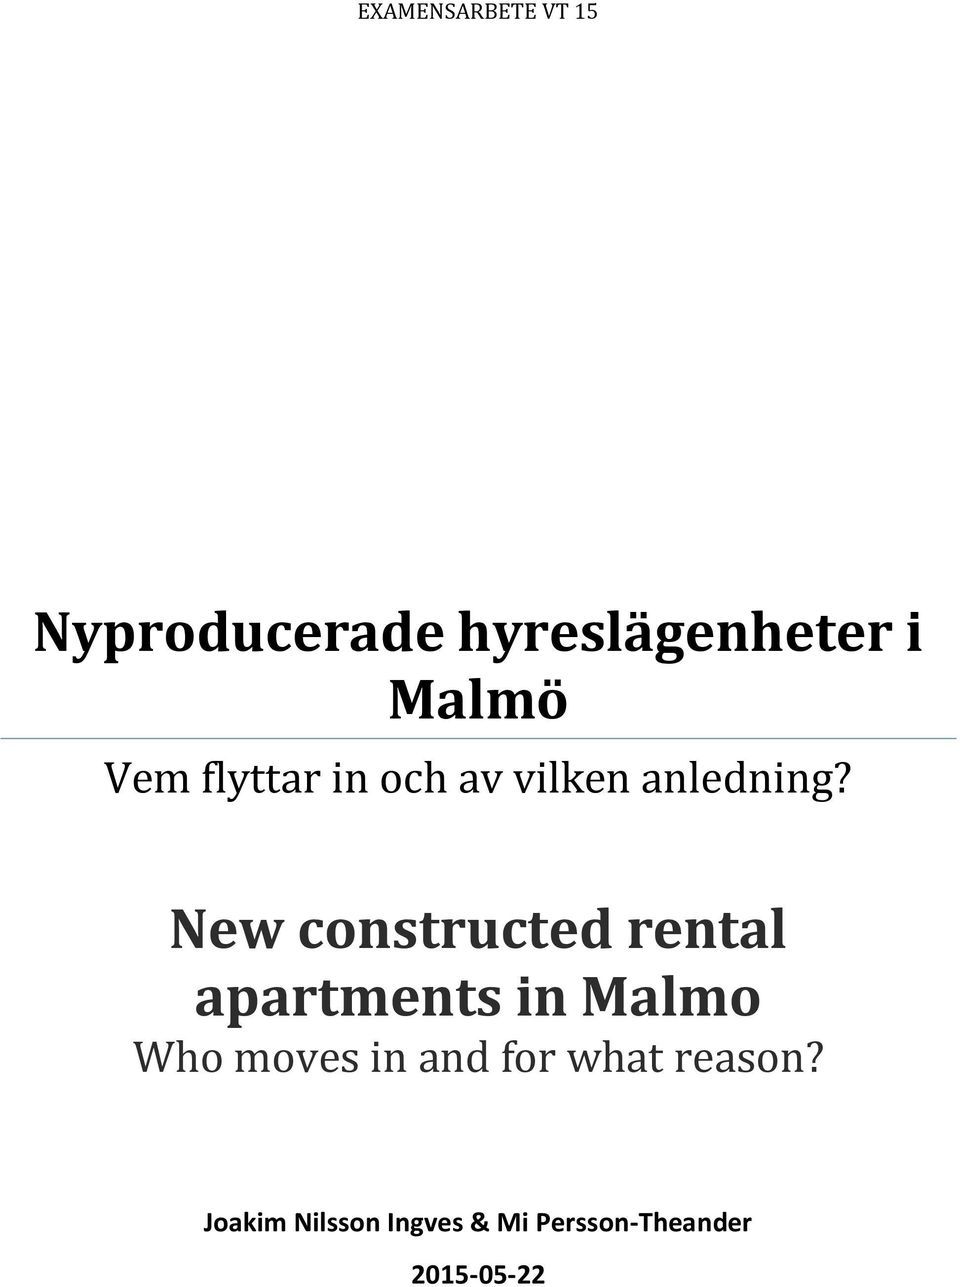 New constructed rental apartments in Malmo Who moves in